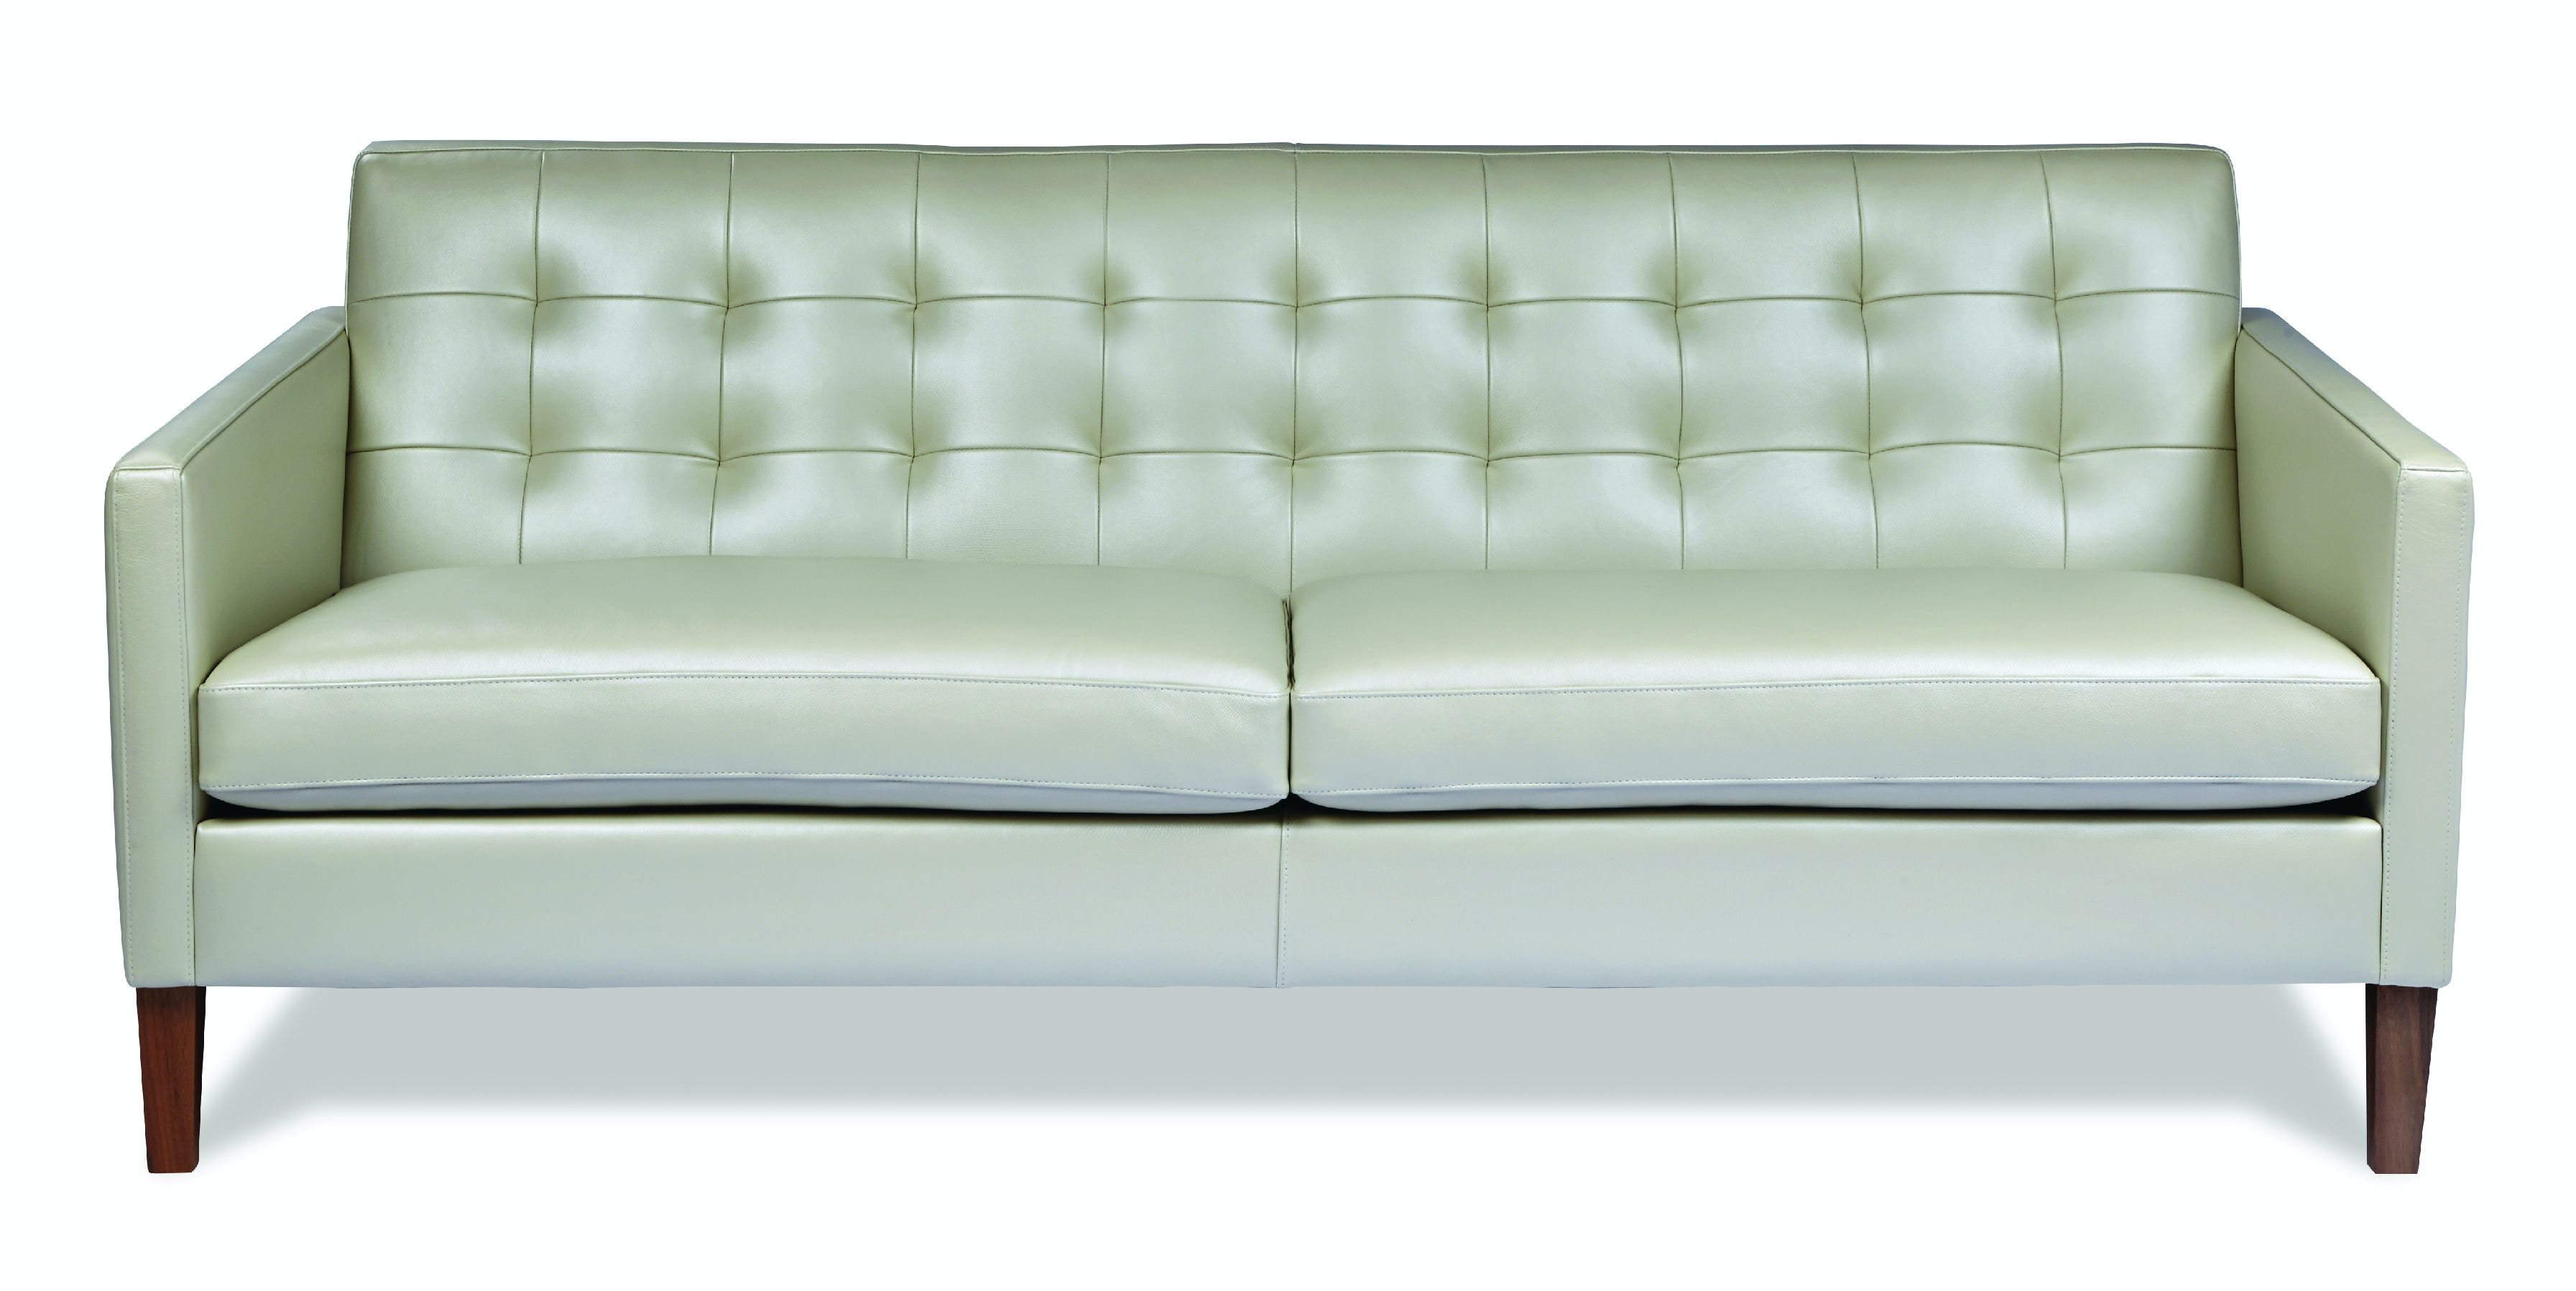 Leather sofa and loveseat houston tx dakota sofa for Furniture 77095